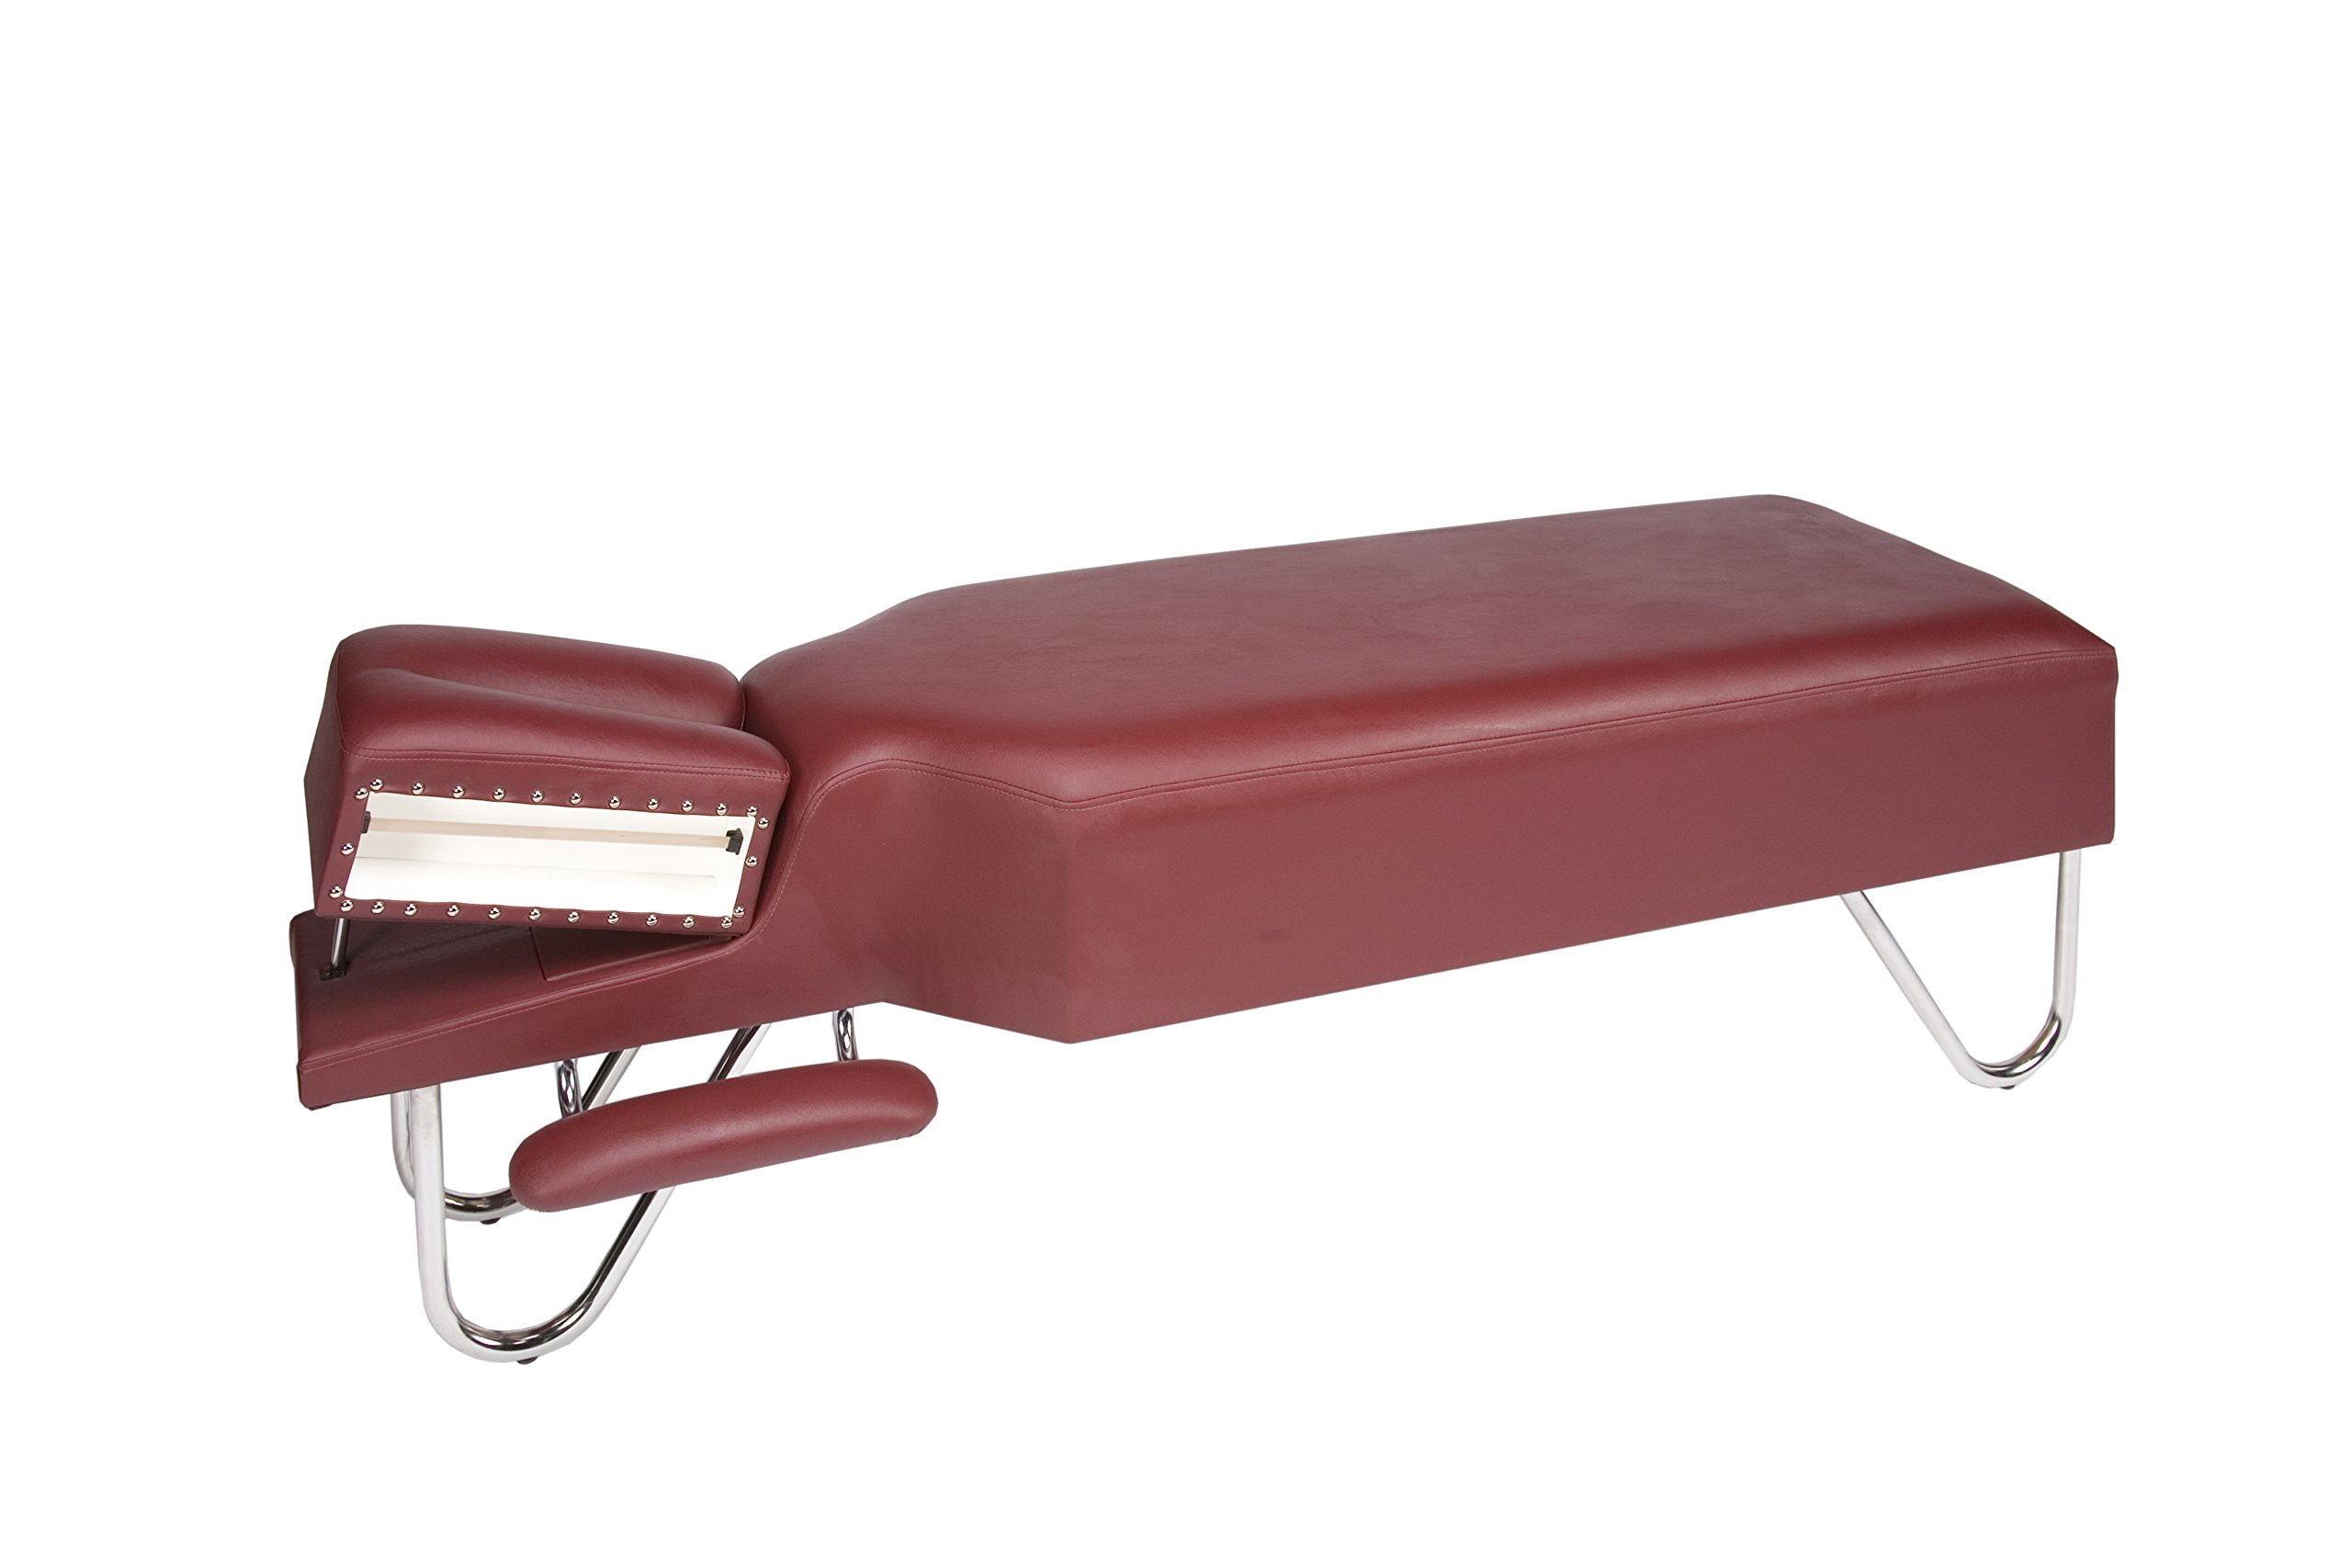 ROW Medical 3-06 Adjustment Bench with Armrests and Headpiece, Burgundy